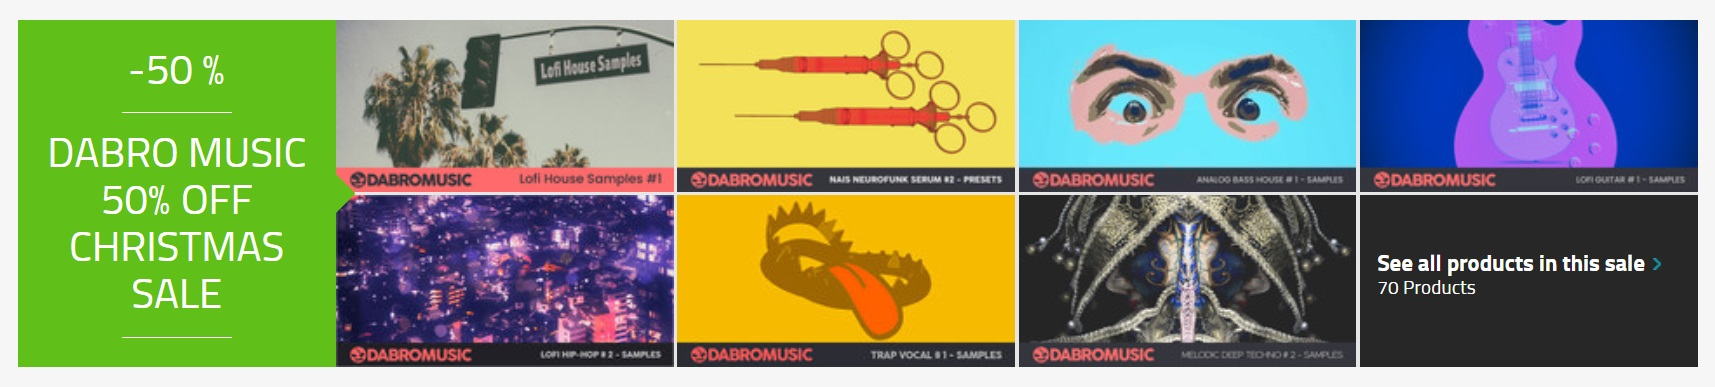 [DTMニュース]dabro-music-holiday-sale-2020-1